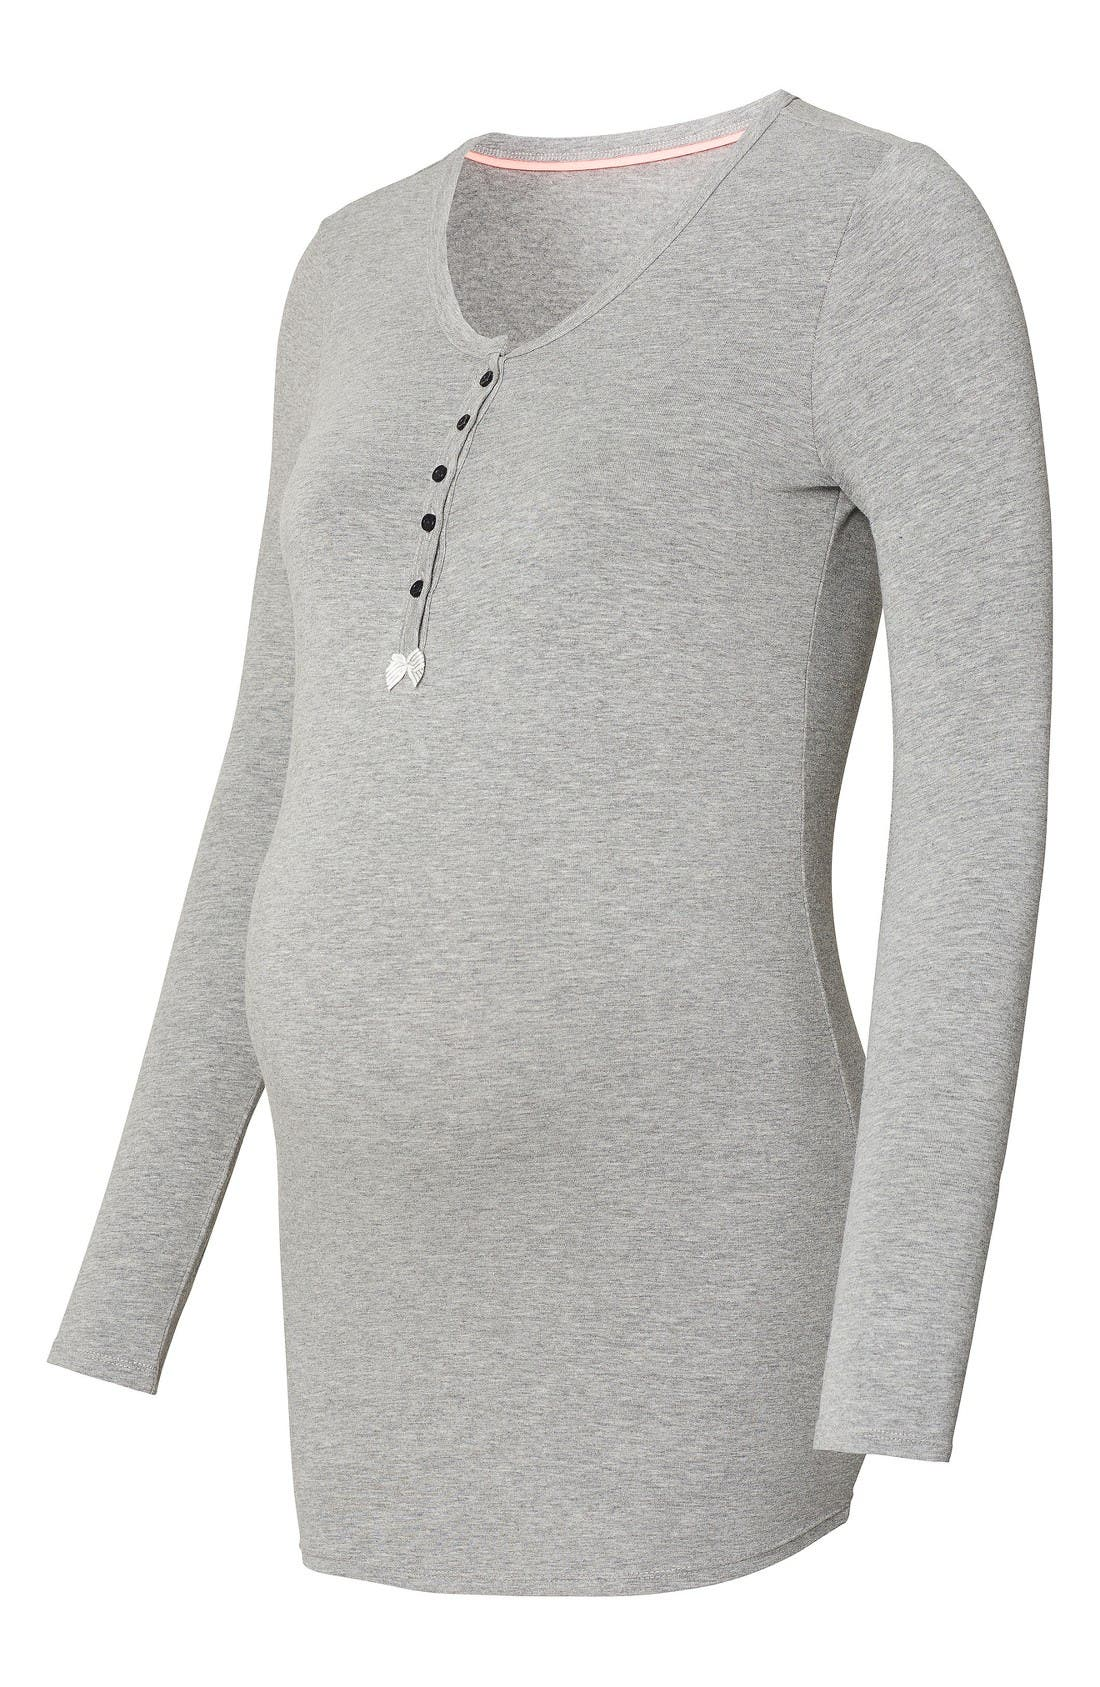 Feline Henley Maternity/Nursing Tee,                             Alternate thumbnail 4, color,                             Grey